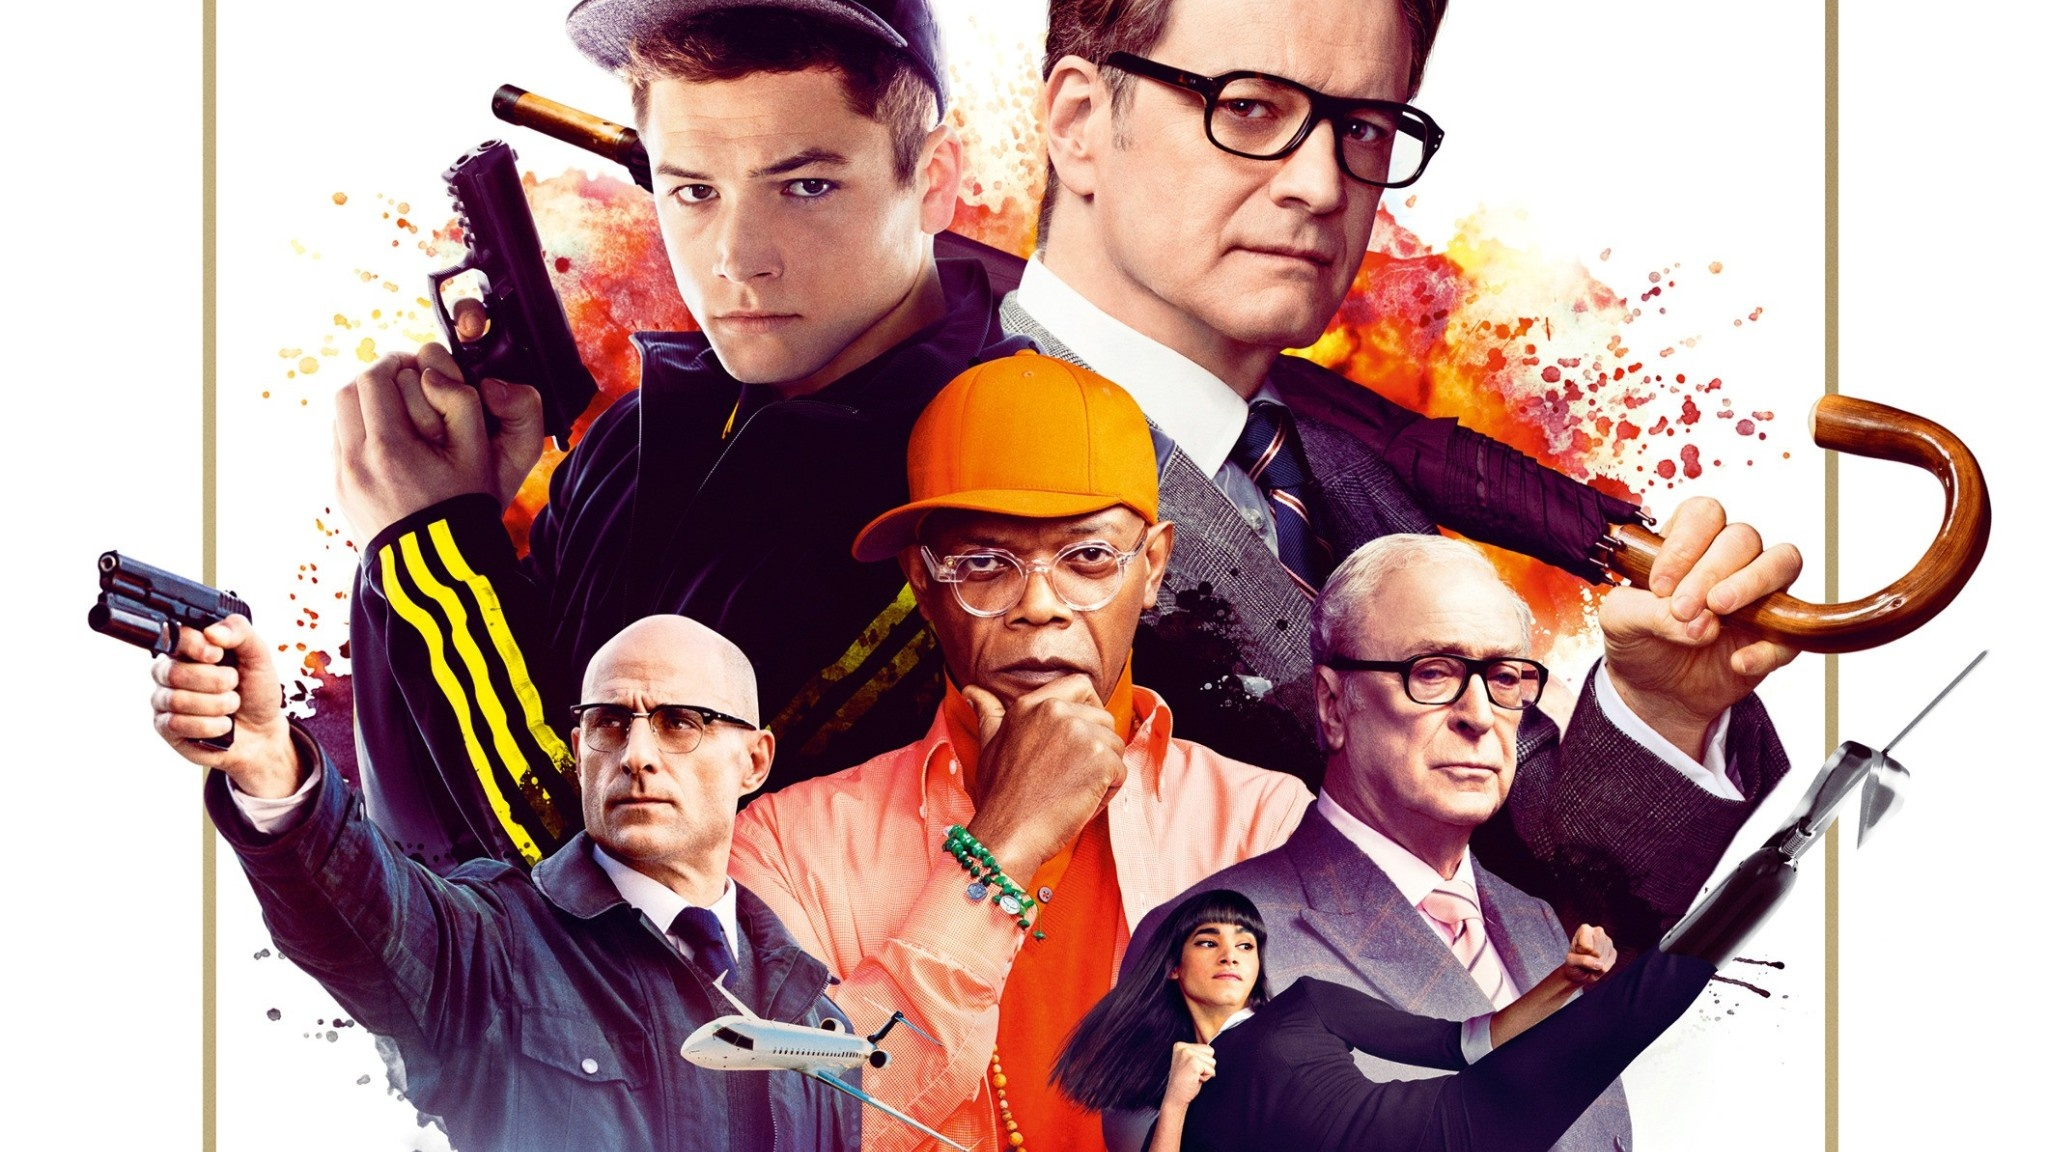 kingsman__the_secret_service_poster-2048x1152